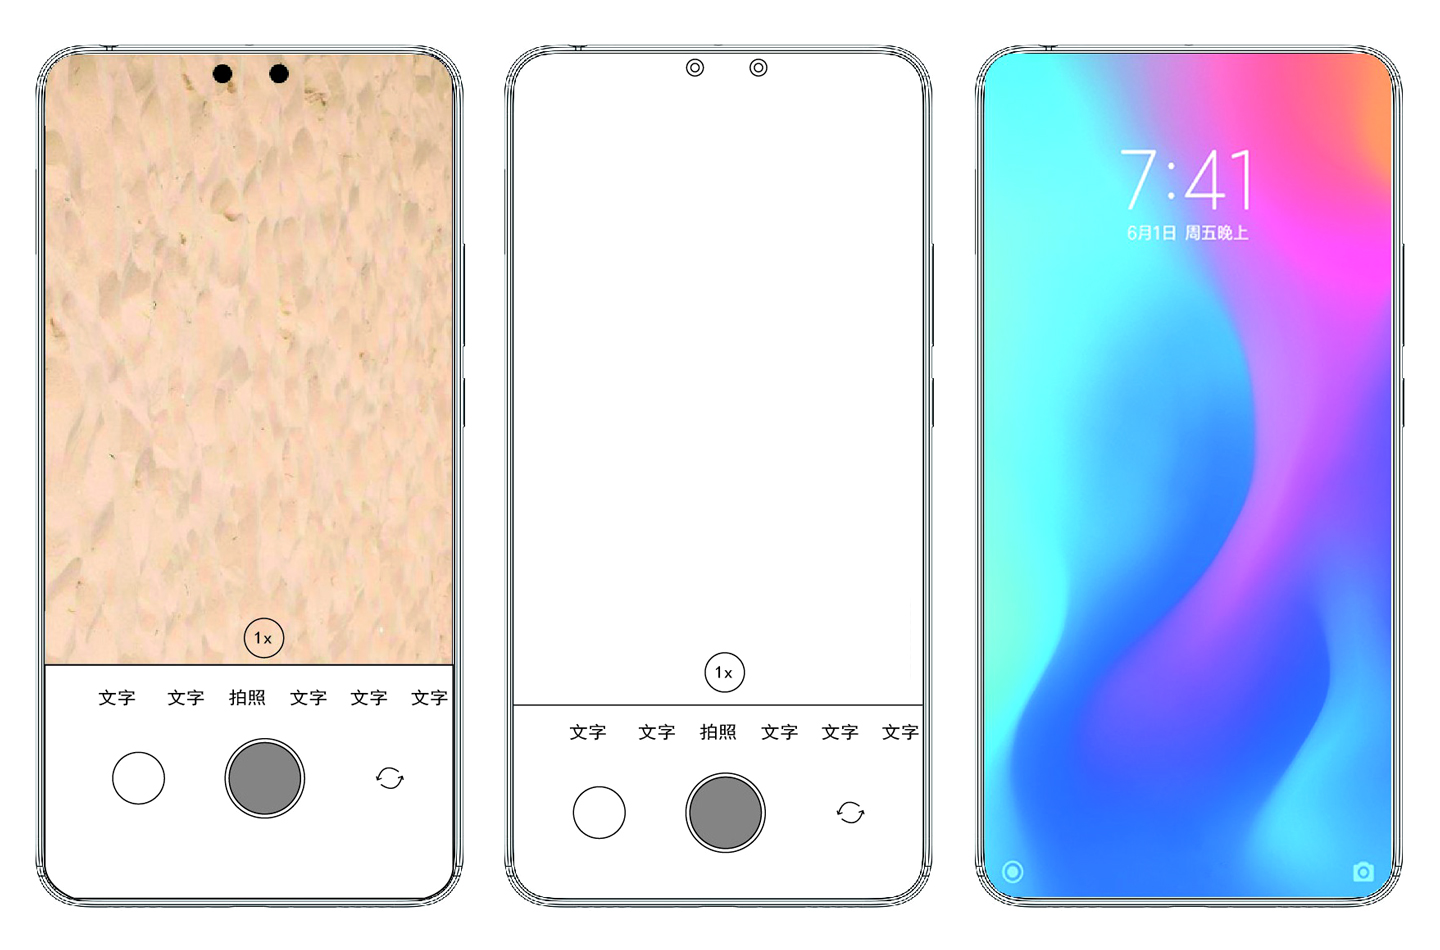 CNIPA Registers Xiaomi's In-Display Dual-selfie Camera Design Patent